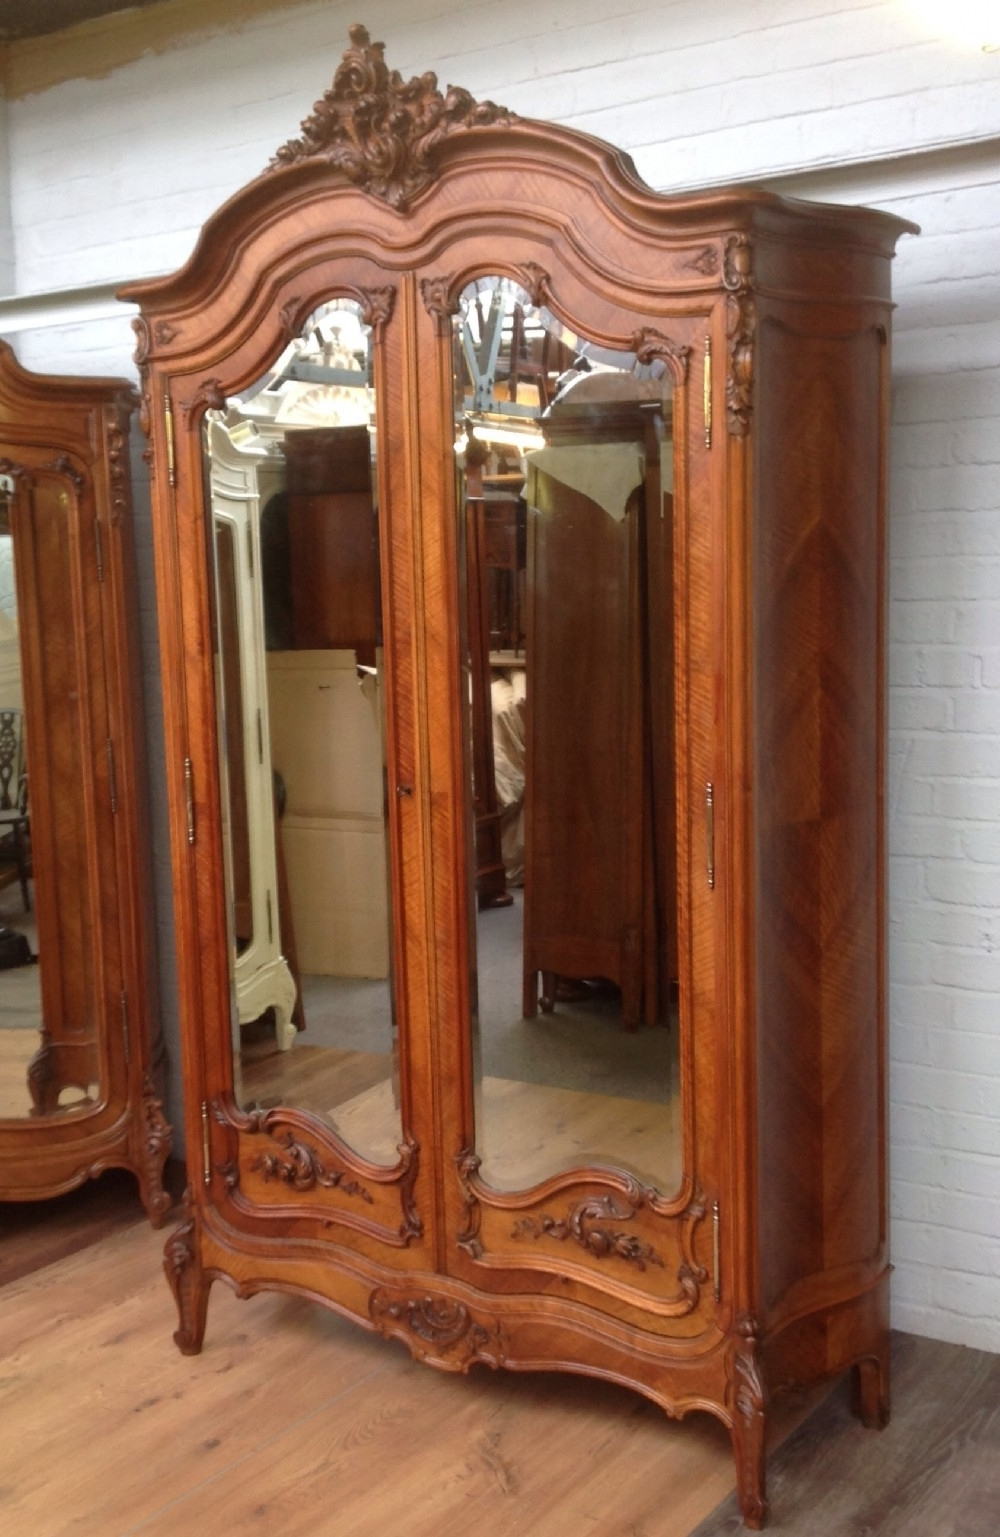 Antique French Walnut Armoire With Carved Doors (View 2 of 15)